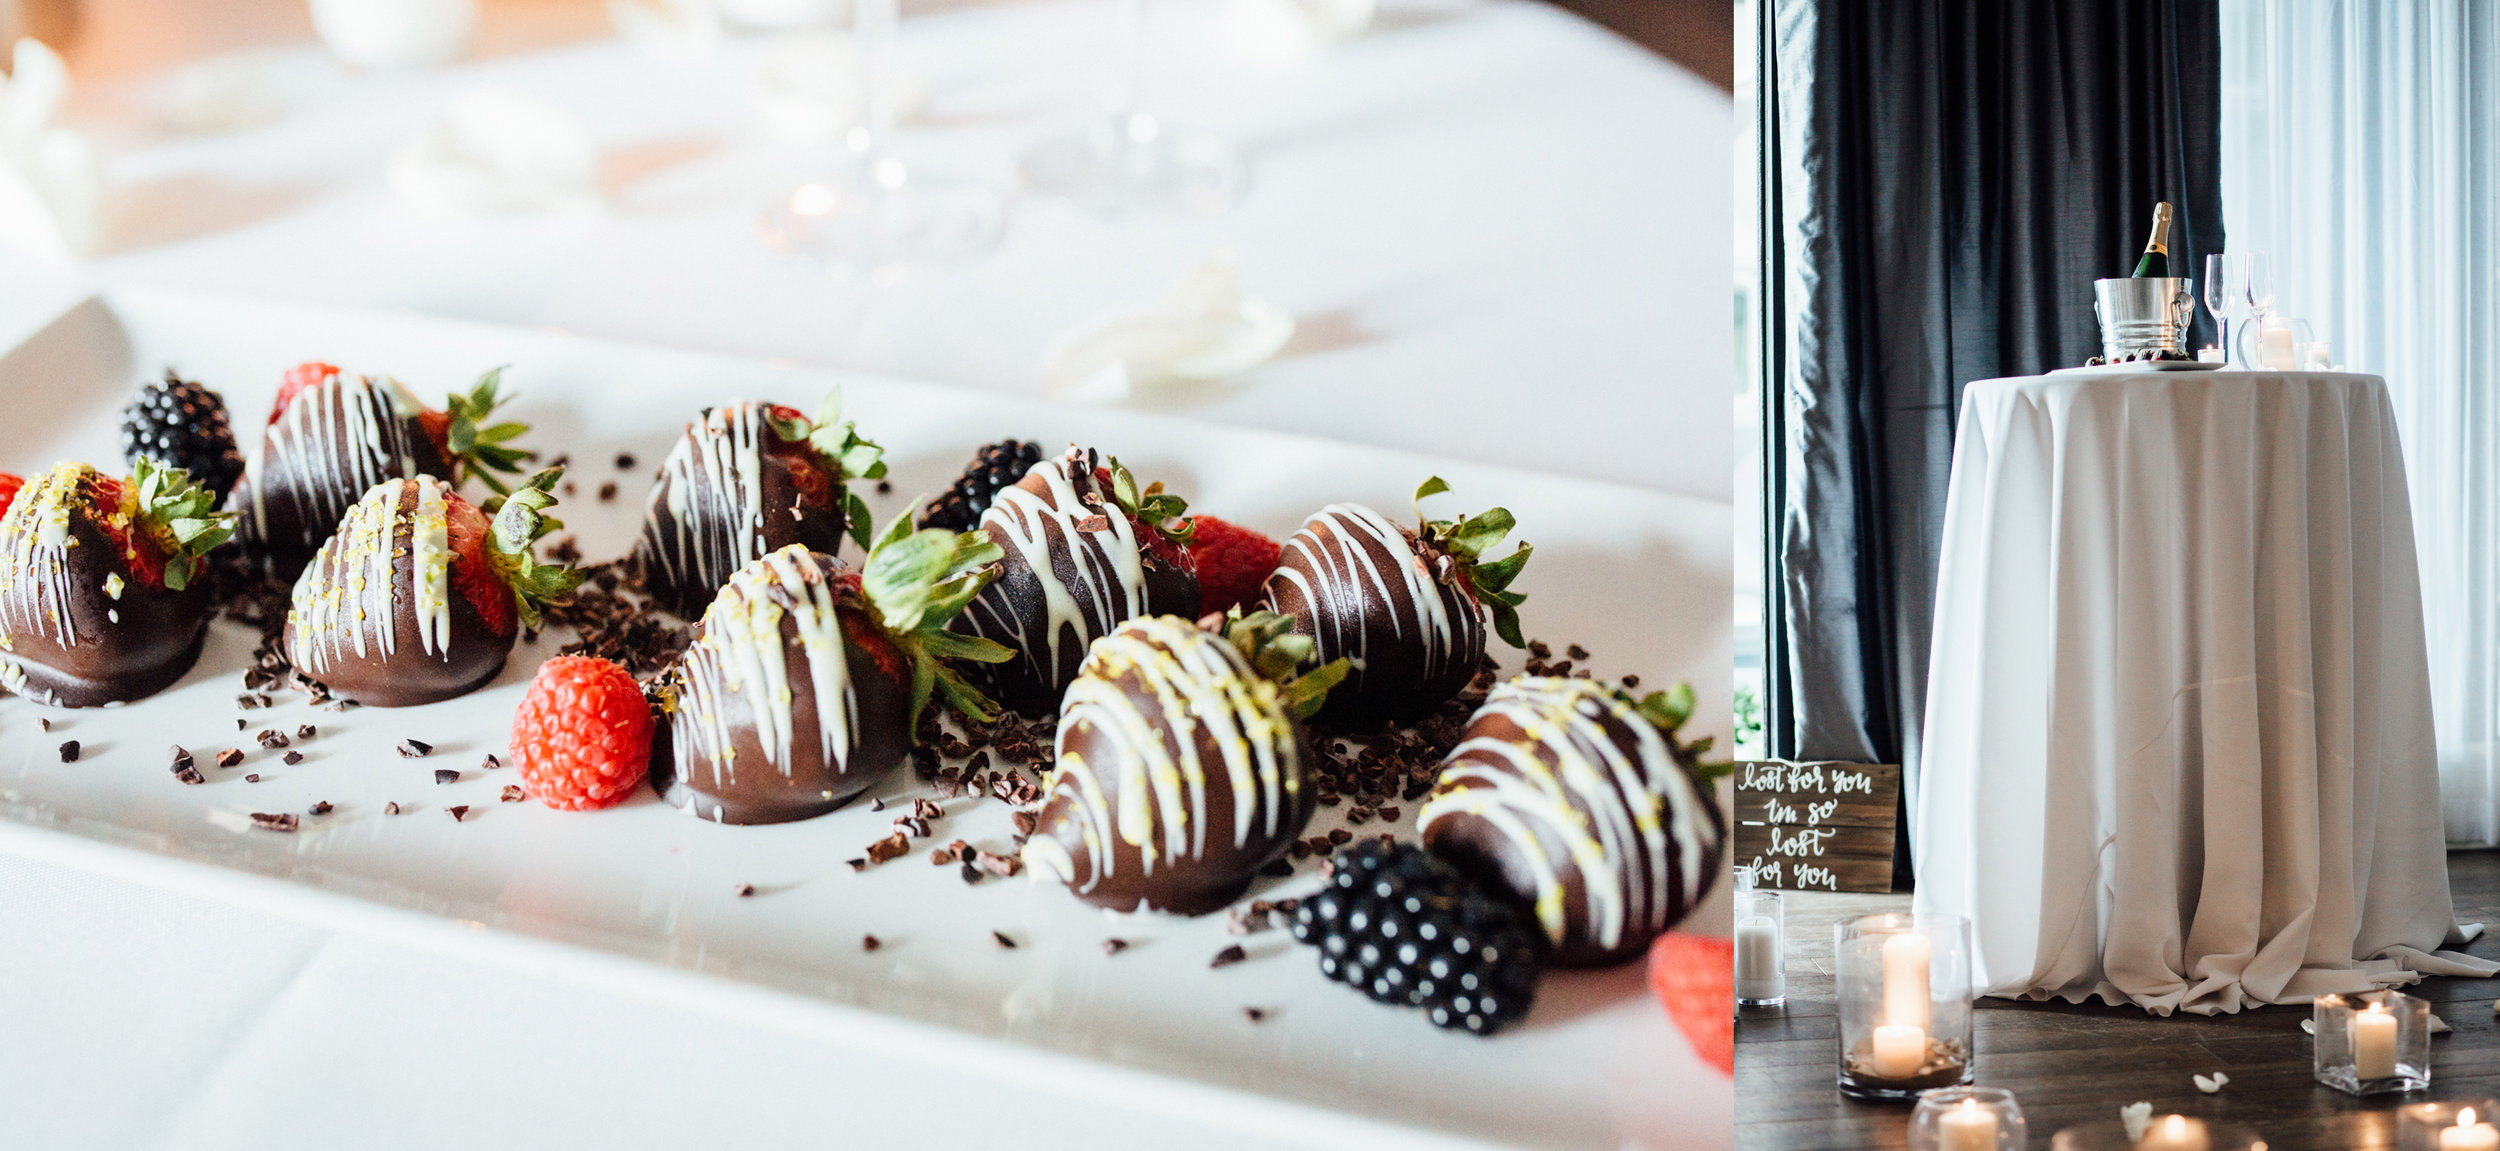 Chocolate covered strawberries | Wedding Proposal Pittsburgh | Exhale Events and Wedding Planners |